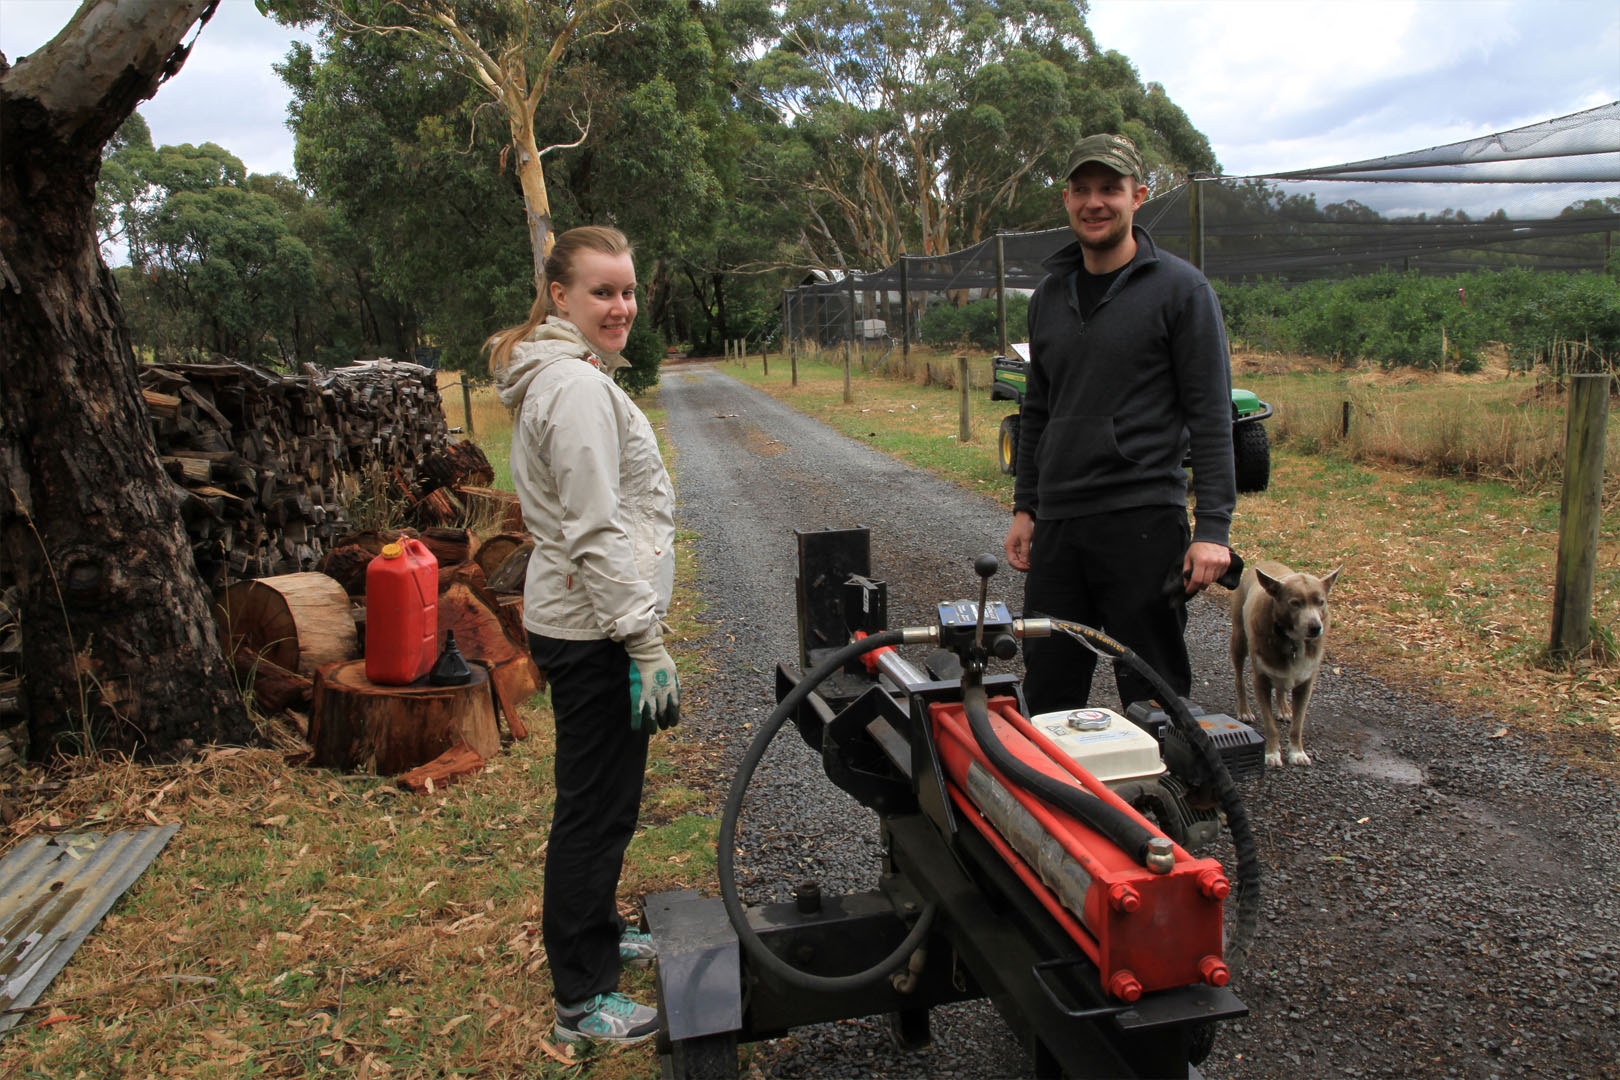 wwoof workers emily hill